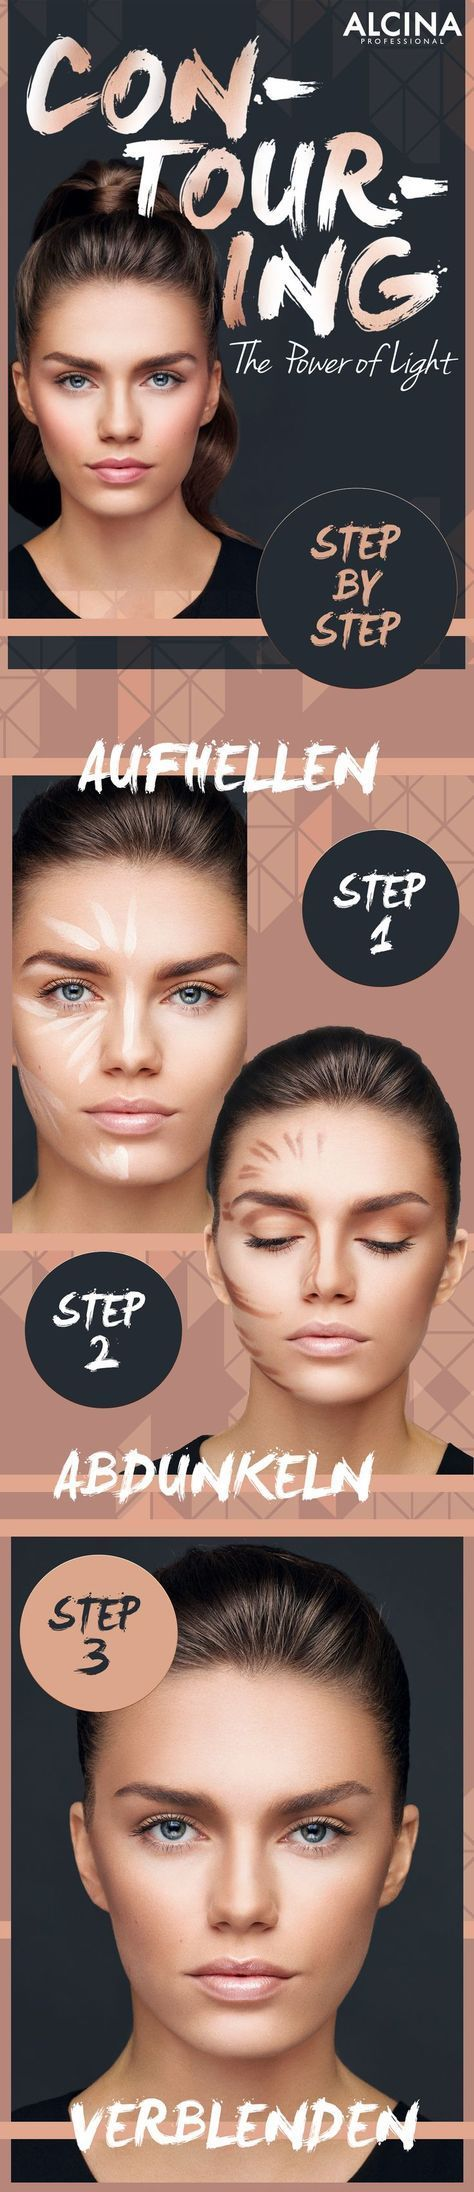 best beauty images on pinterest whoville hair beauty makeup